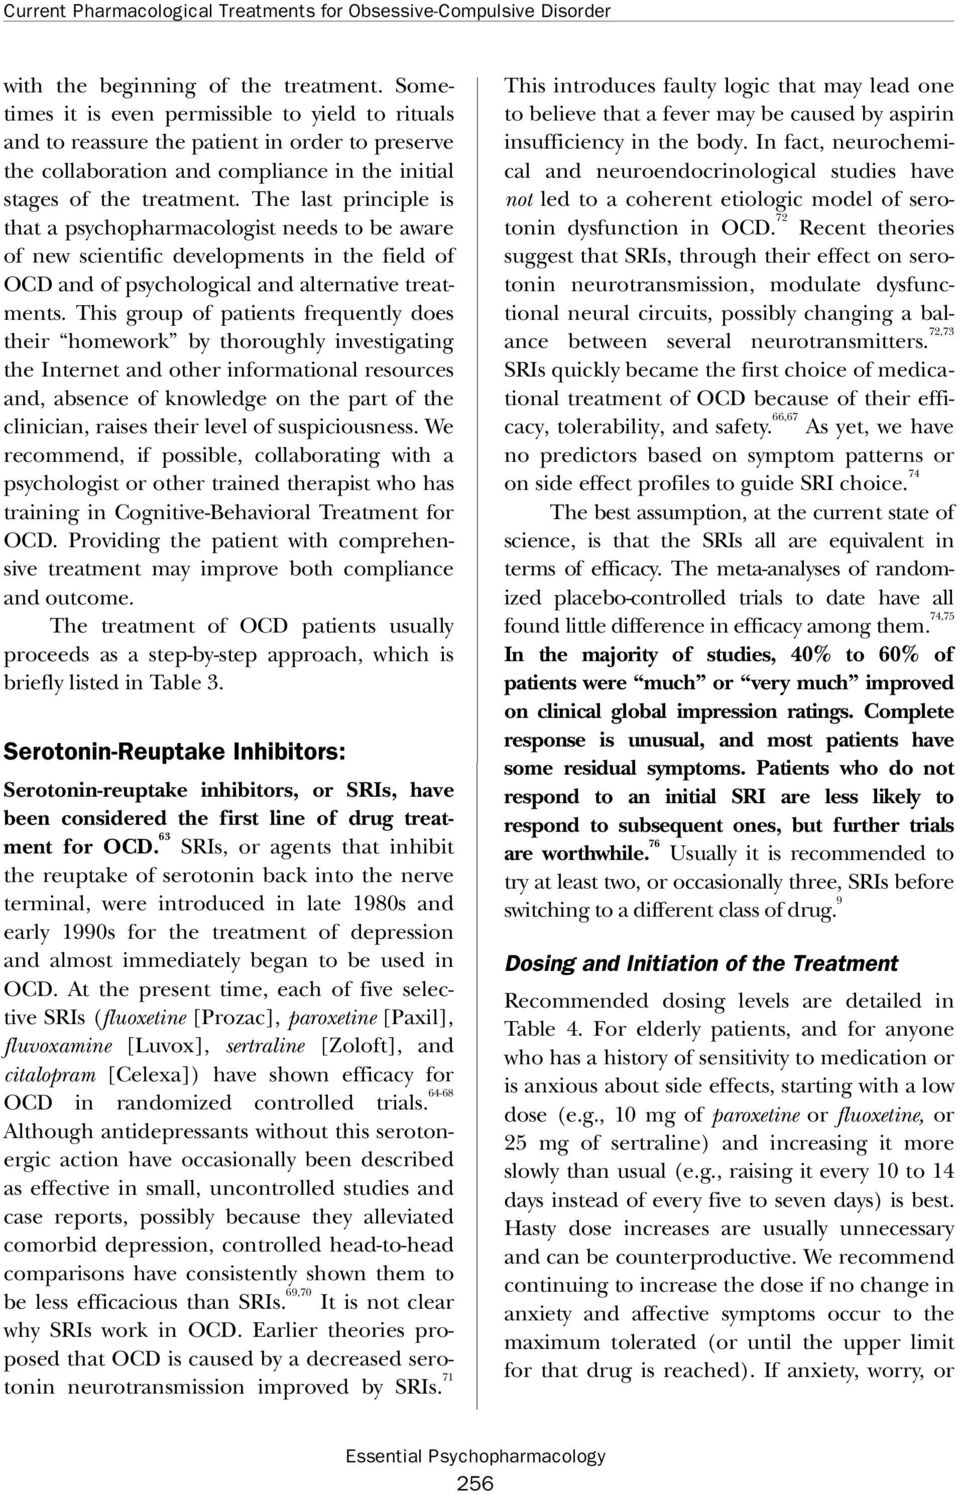 The last principle is that a psychopharmacologist needs to be aware of new scientific developments in the field of OCD and of psychological and alternative treatments.